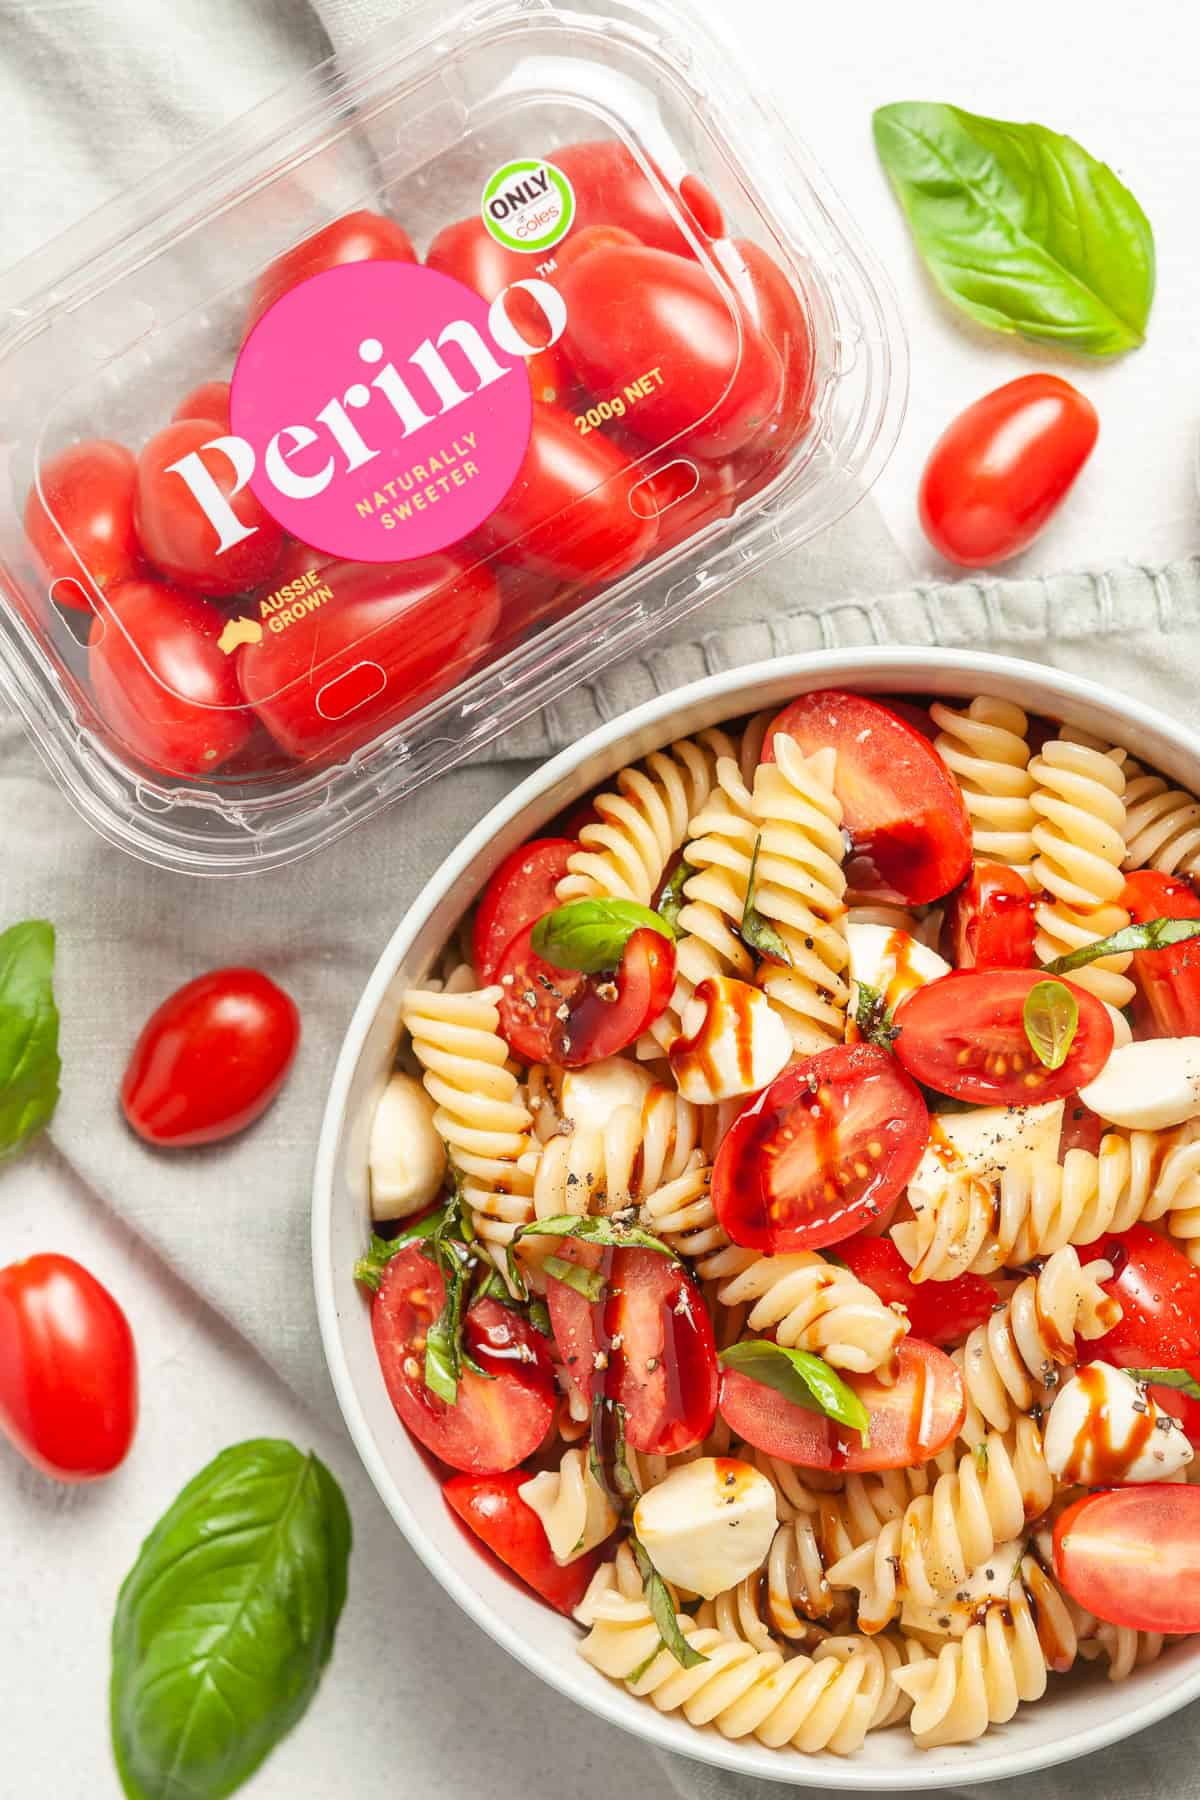 Overhead shot of pasta salad with a silver spoon on plate with a container of Perino Tomatoes and some fresh basil leaves on the side.